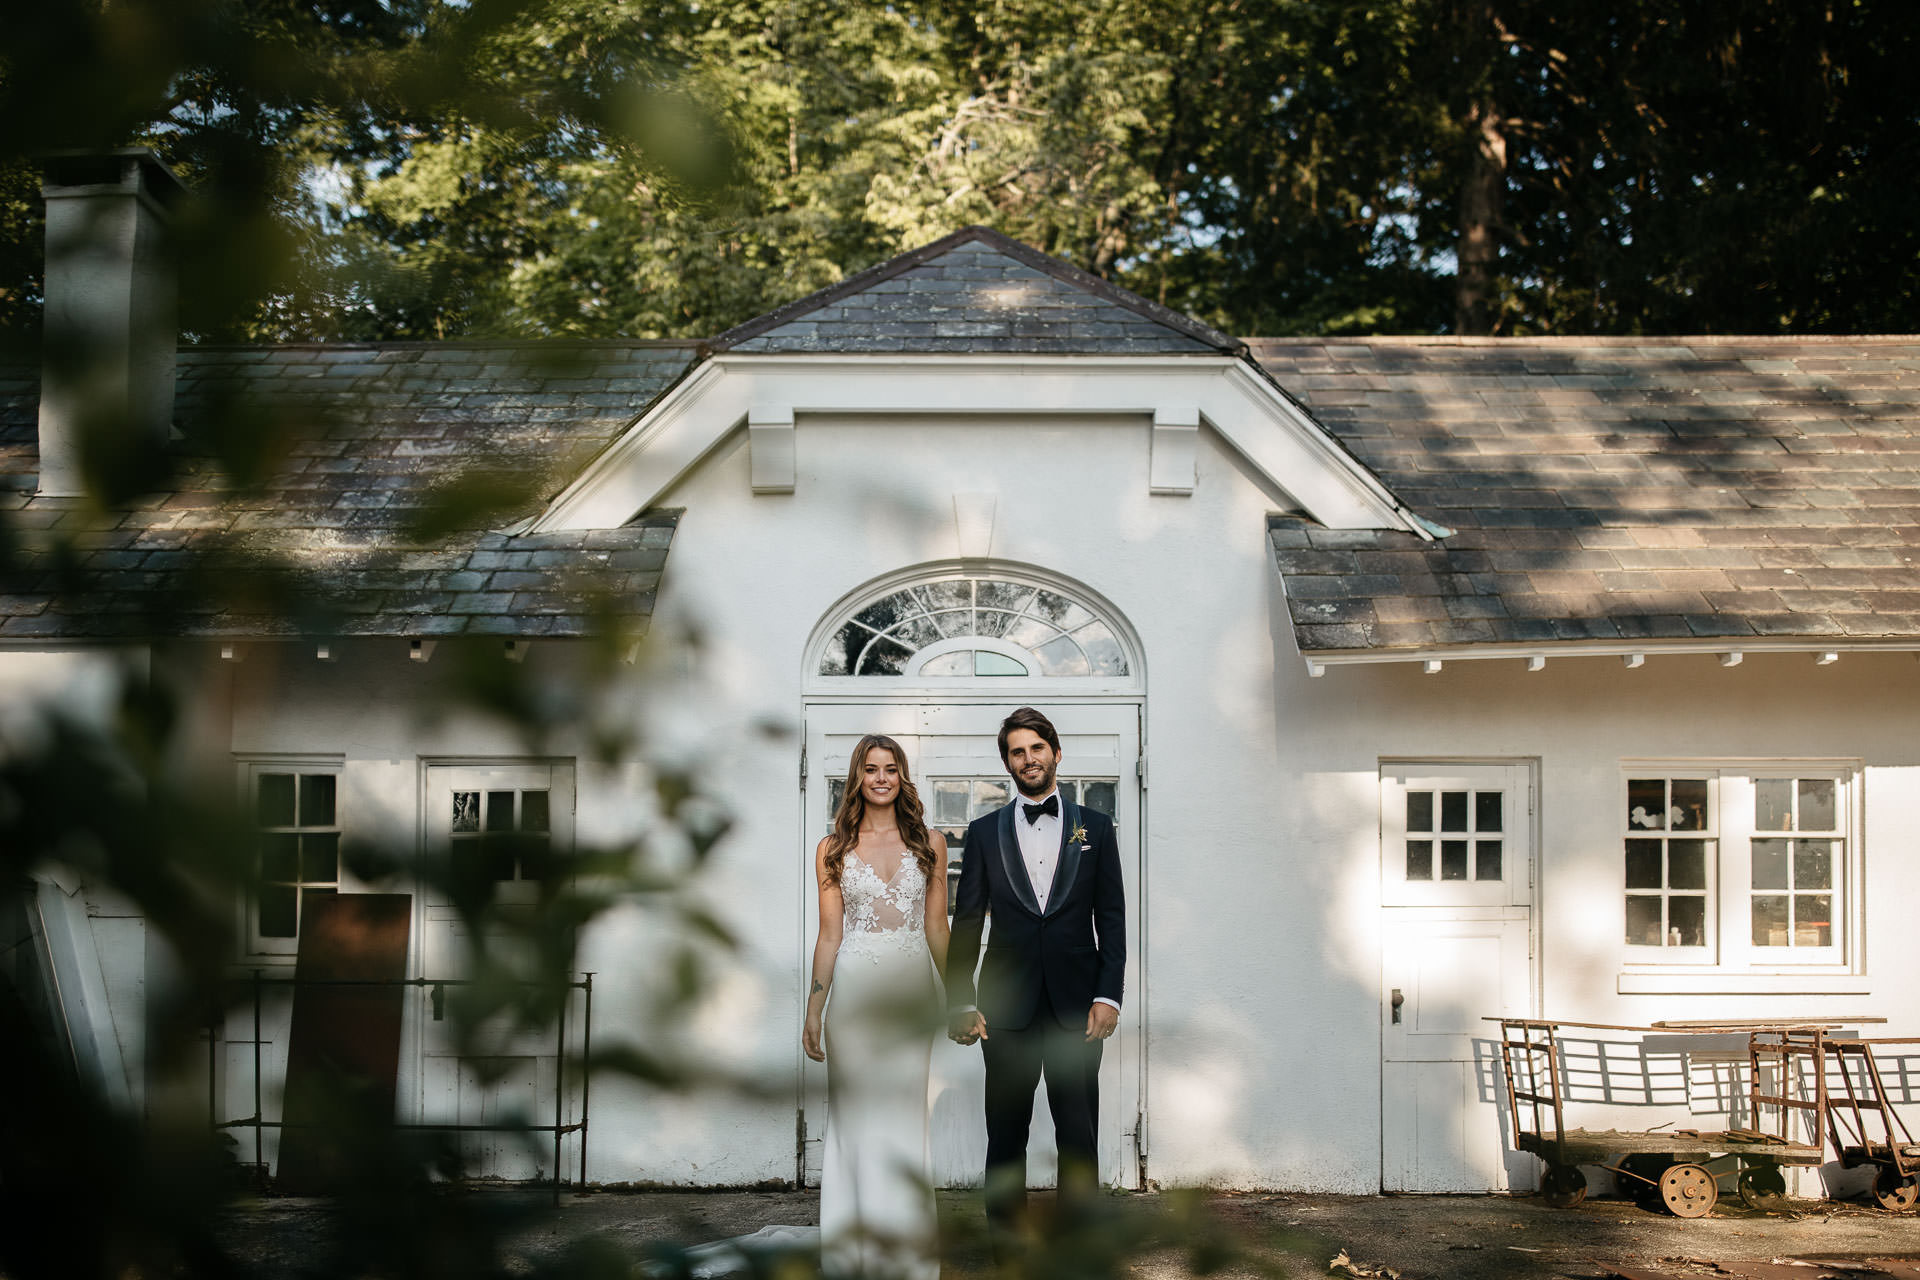 Kelsey & Gaby's Wedding at Southwood Estate in Hudson Valley by Jean-Laurent Gaudy